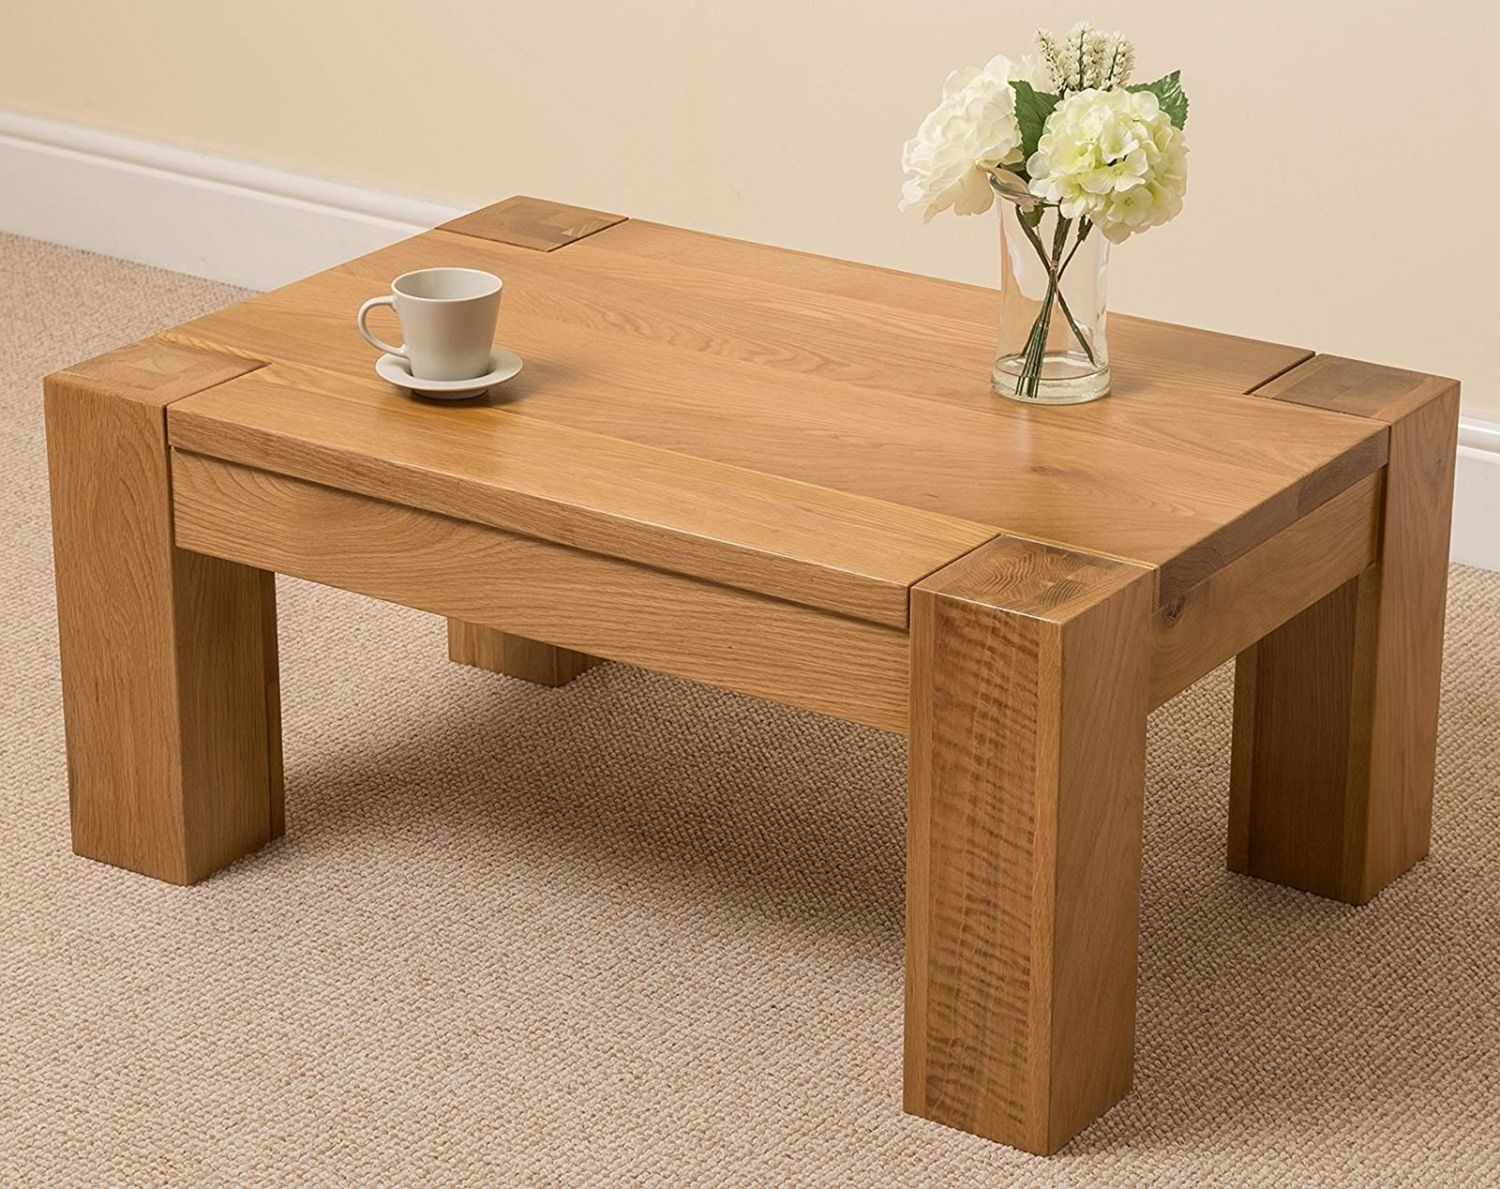 25 Best Amazing Diy Coffee Table Ideas For Your Space Cozy Solid Oak Coffee Table Coffee Table Wood Wood Coffee Table Design [ 1189 x 1500 Pixel ]